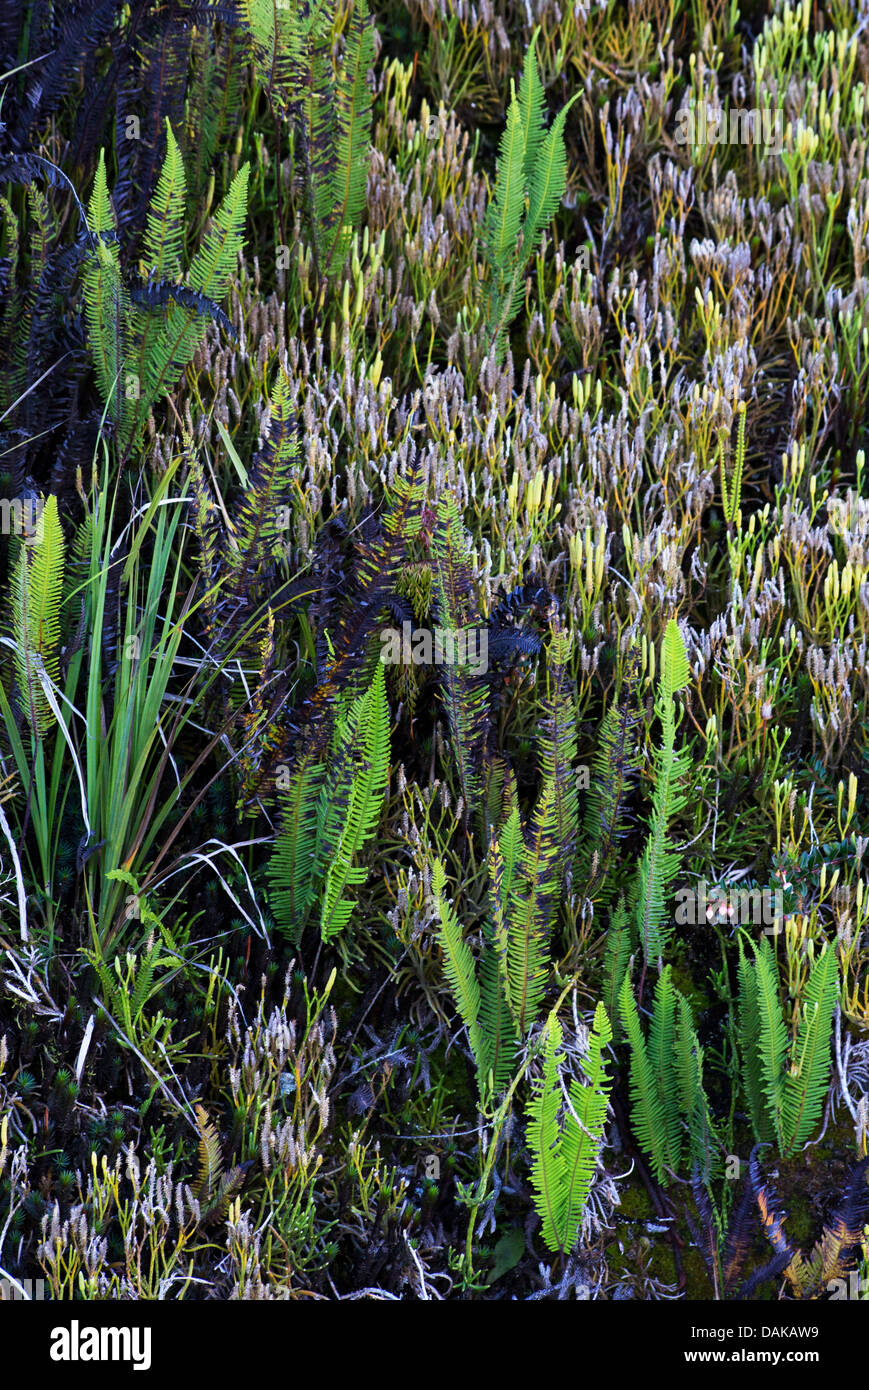 Ferns and other terrestrial vegetation growing on a sloped ridge, Papua New Guinea - Stock Image